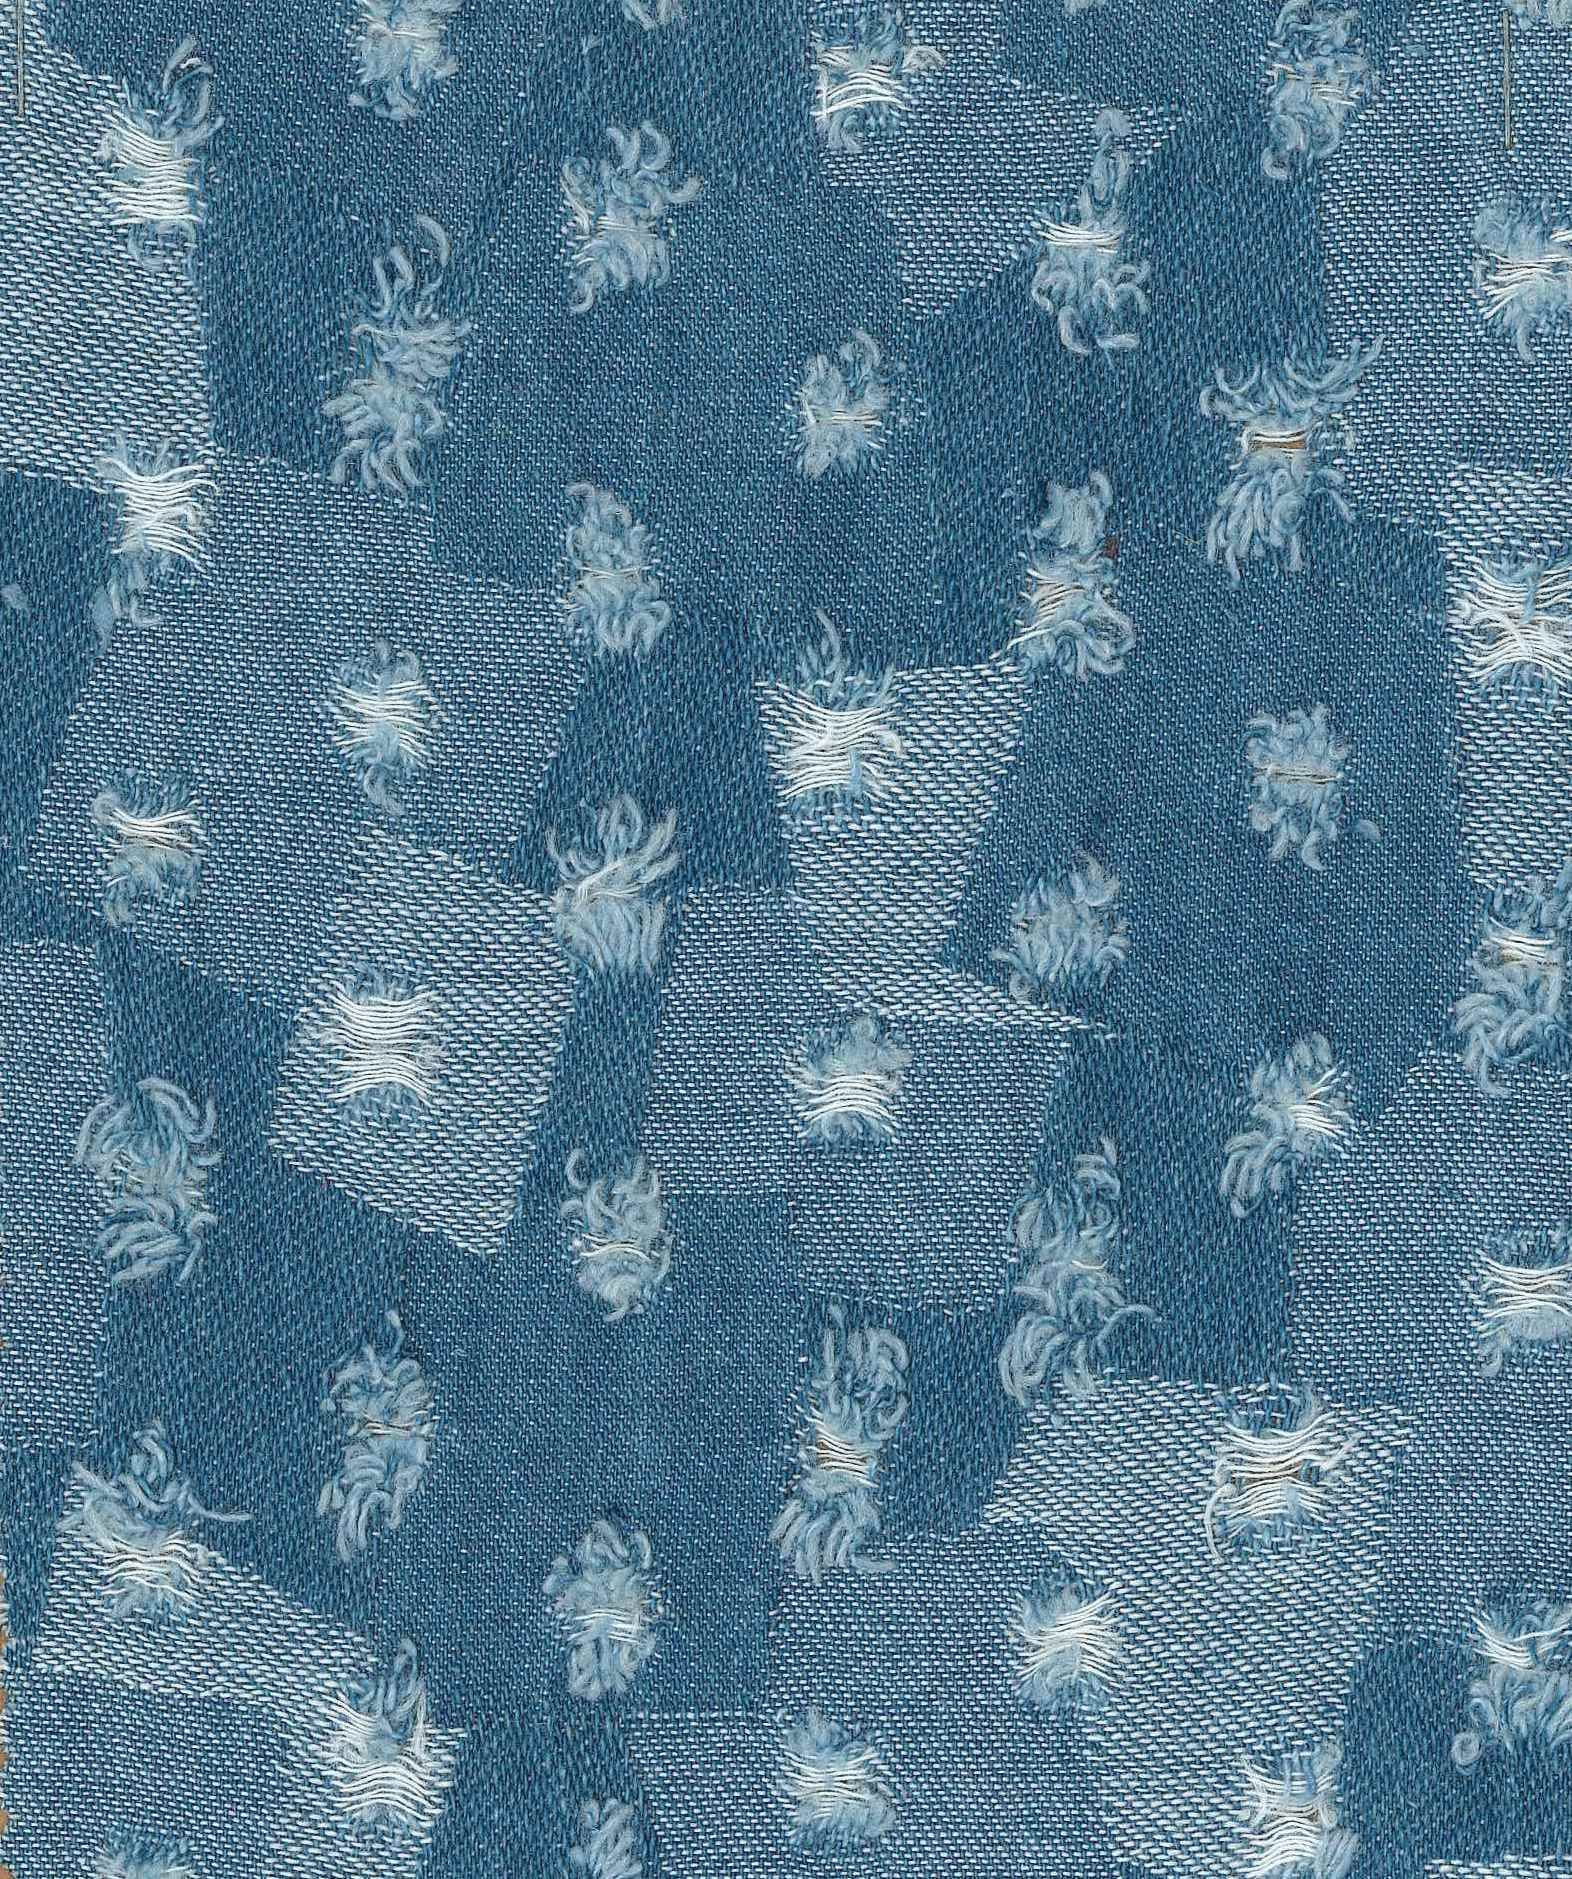 Fabric is 100% Cotton Jacquard Cut Indigo Blue Denim.    Fabric Hand feel is rough and weight of fabric is around 250gsm to 280gsm or around 7.8 oz to 7.8 oz.   It is heavy weight fabric, good for making Jackets, Jeans, denim shorts, upholstery, & hand bags.    #fabrics #denims #jacquard